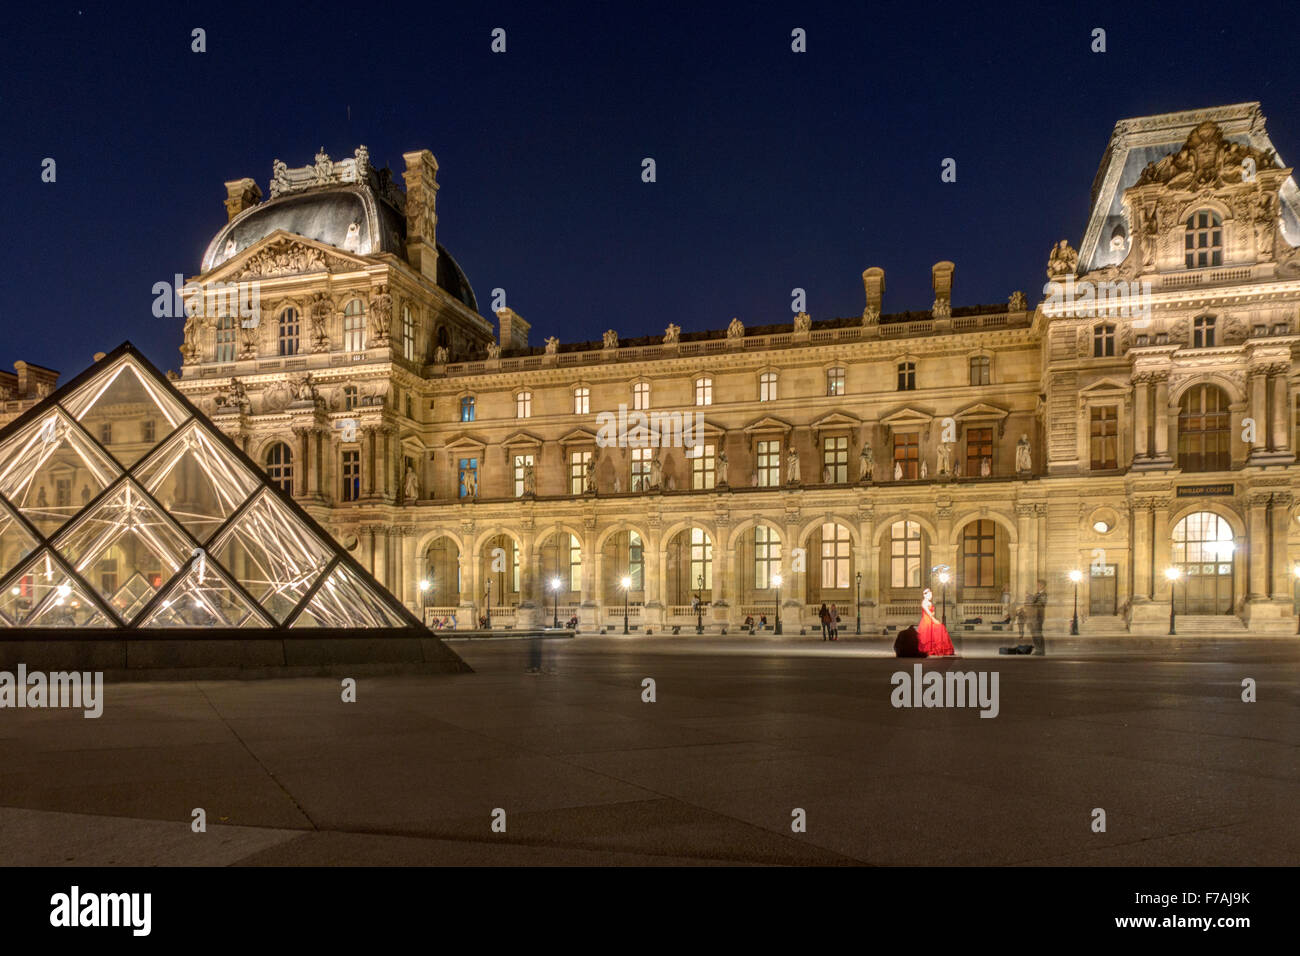 The Louvre Paris - Stock Image